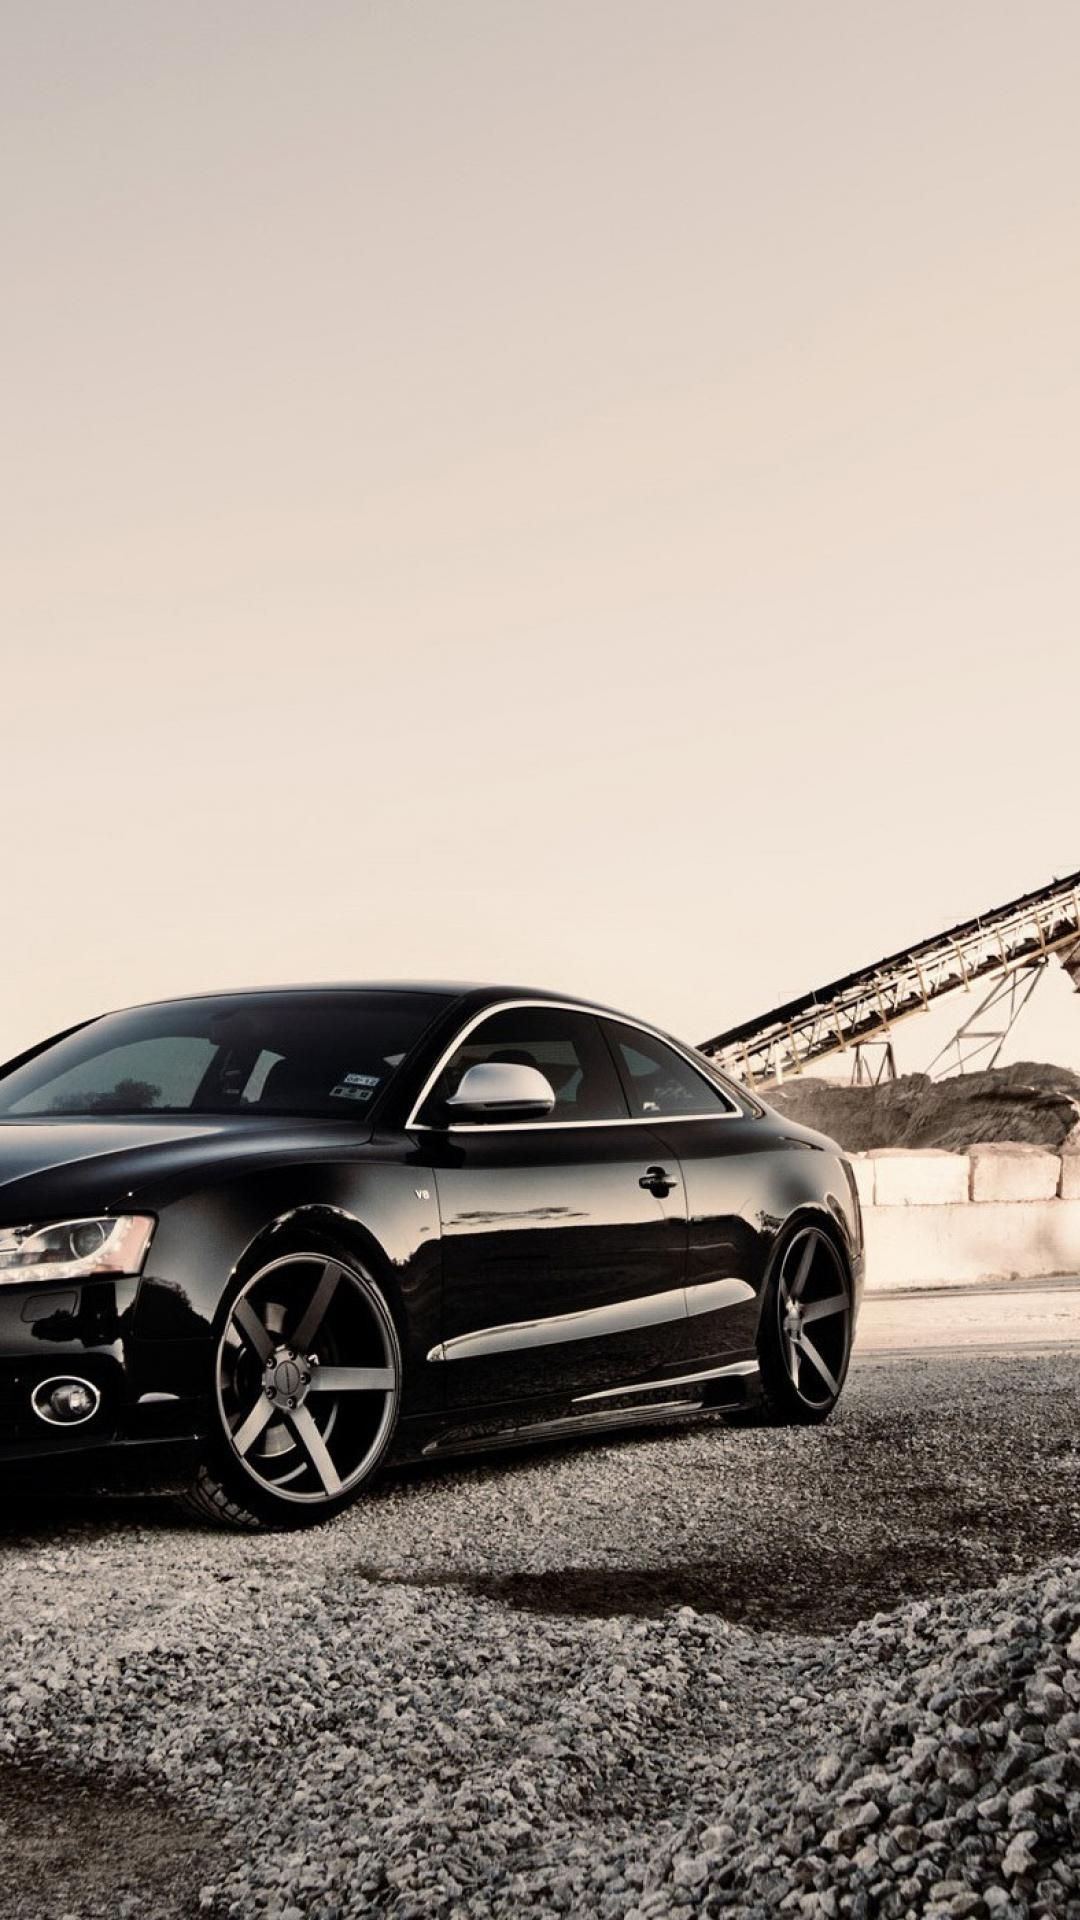 These Are 5 Images About Audi Car Android Wallpaperdownload Audi